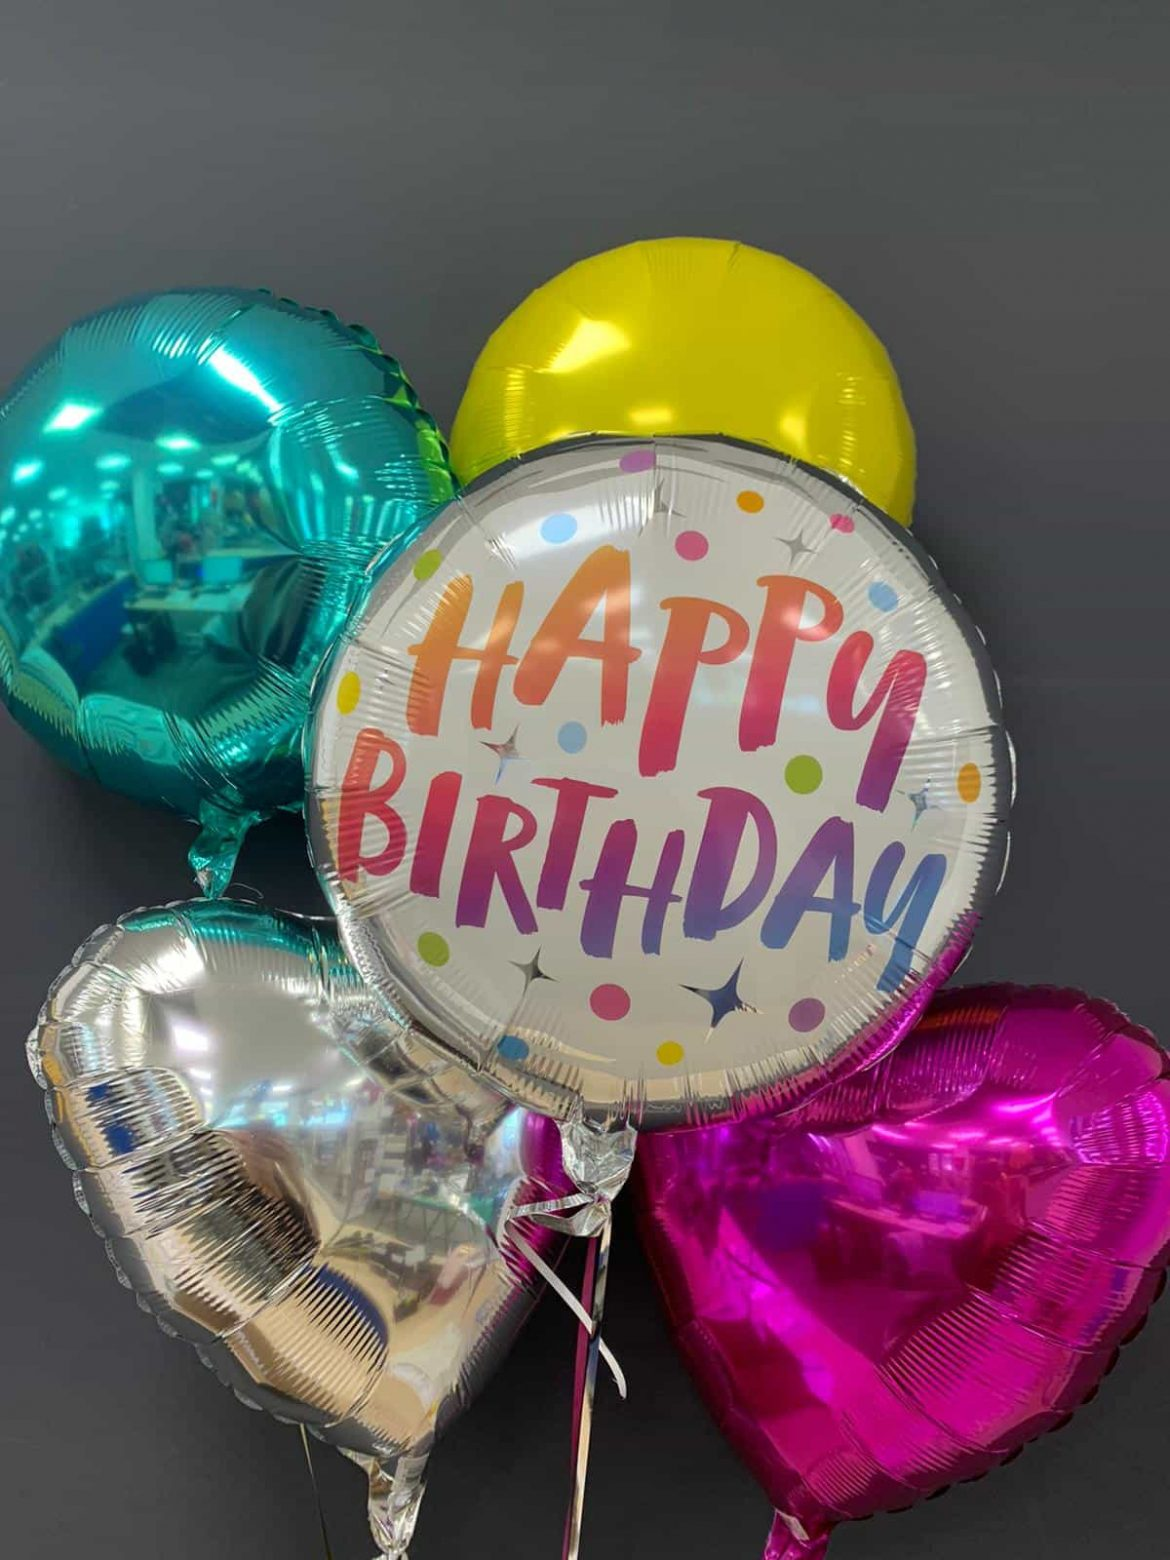 Happy Birthday € 5,50 <br />Dekoballons € 4,50 1